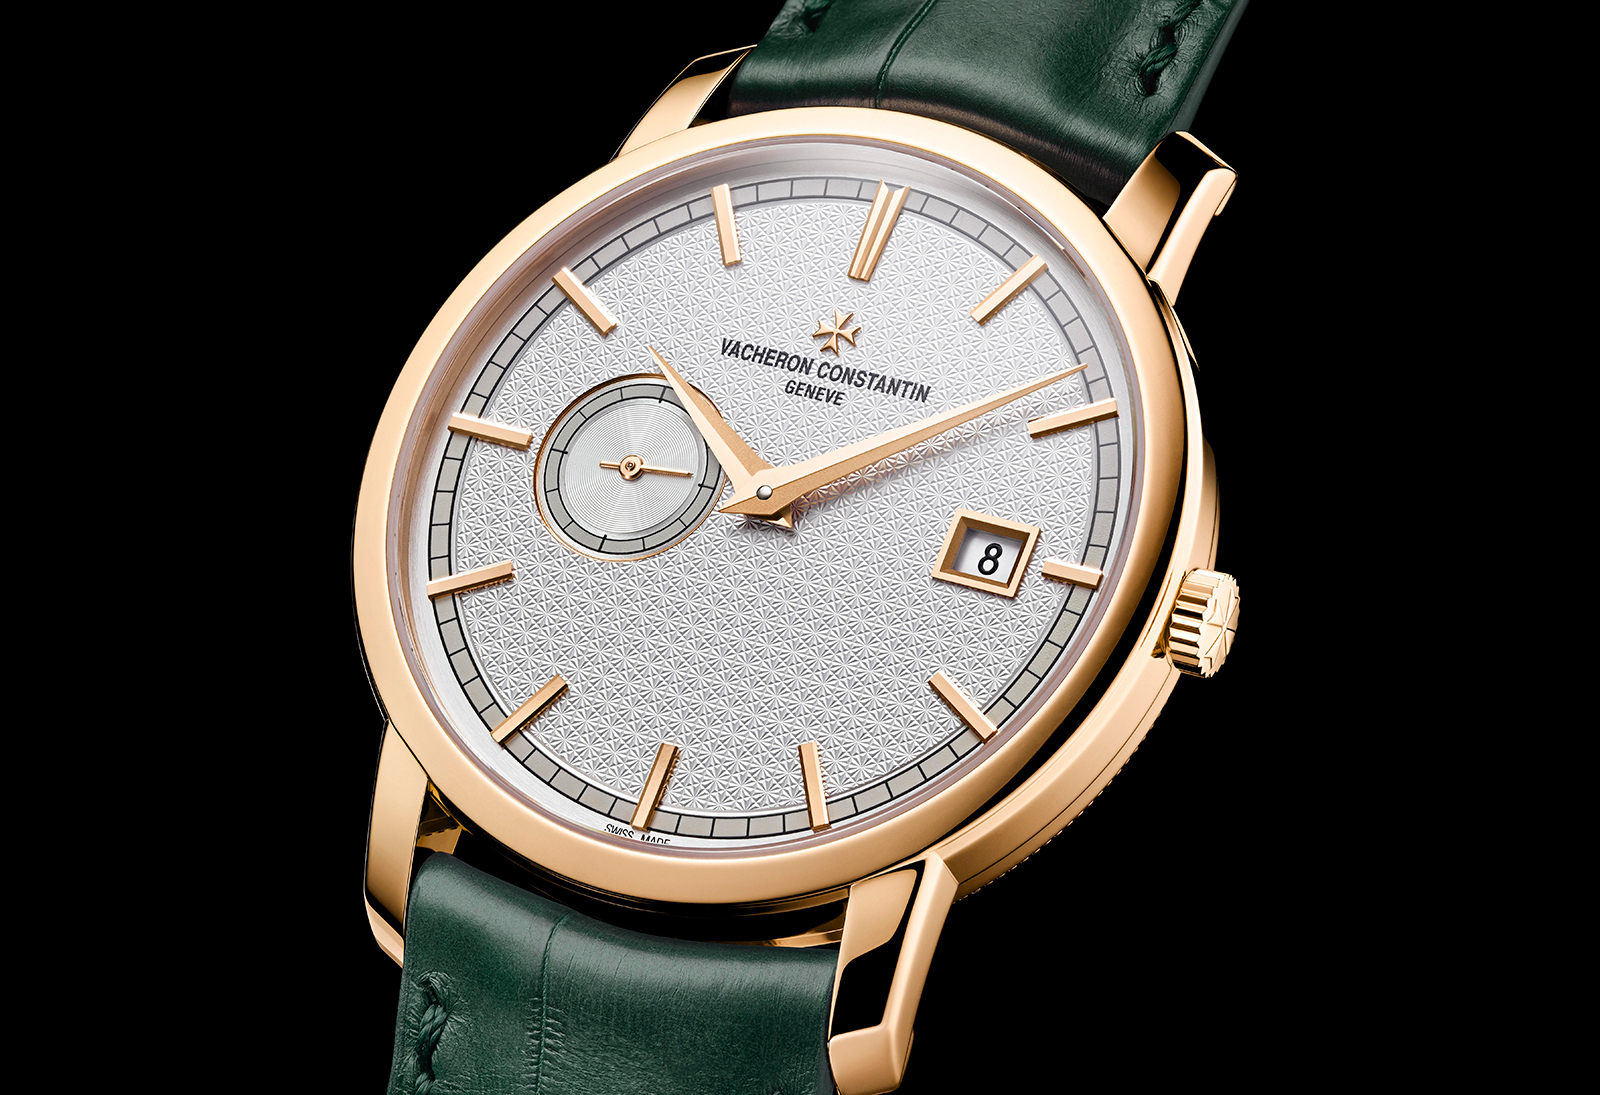 Vacheron Constantin Traditionnelle Self-Winding Harrods 1